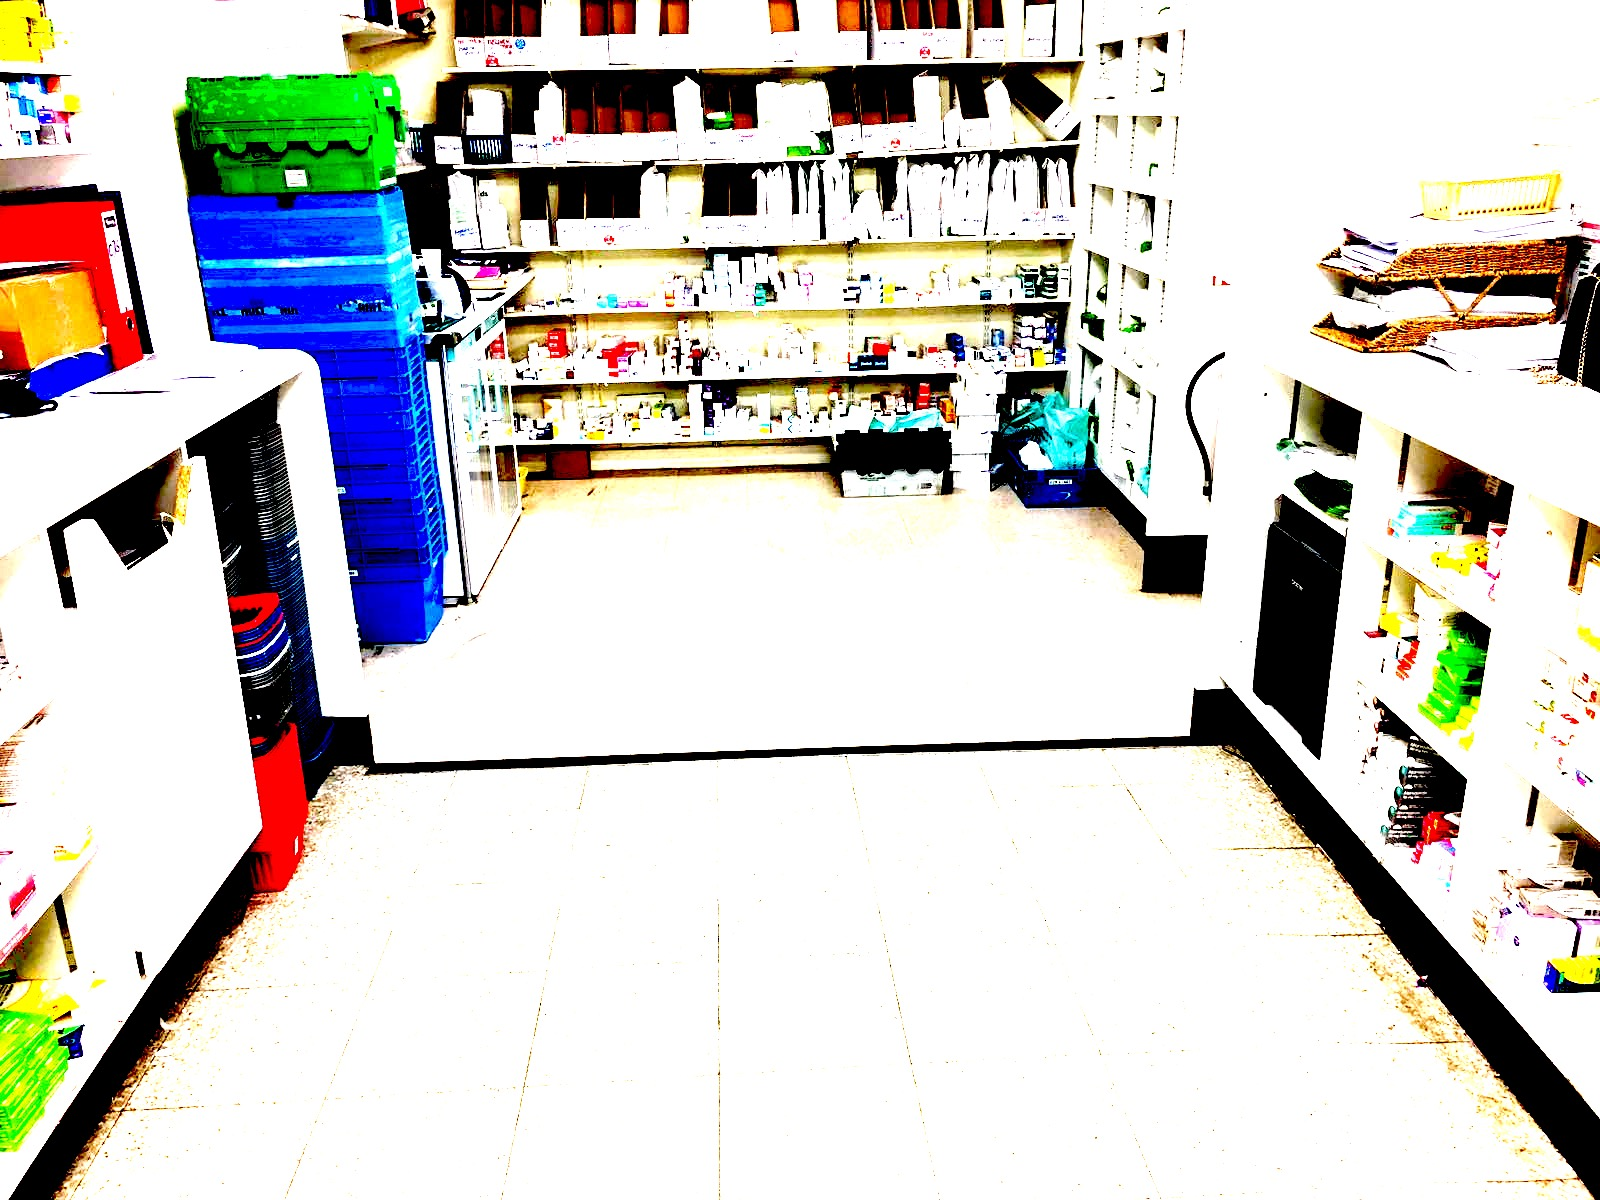 Tidy community pharmacist with blue totes neatly arranged